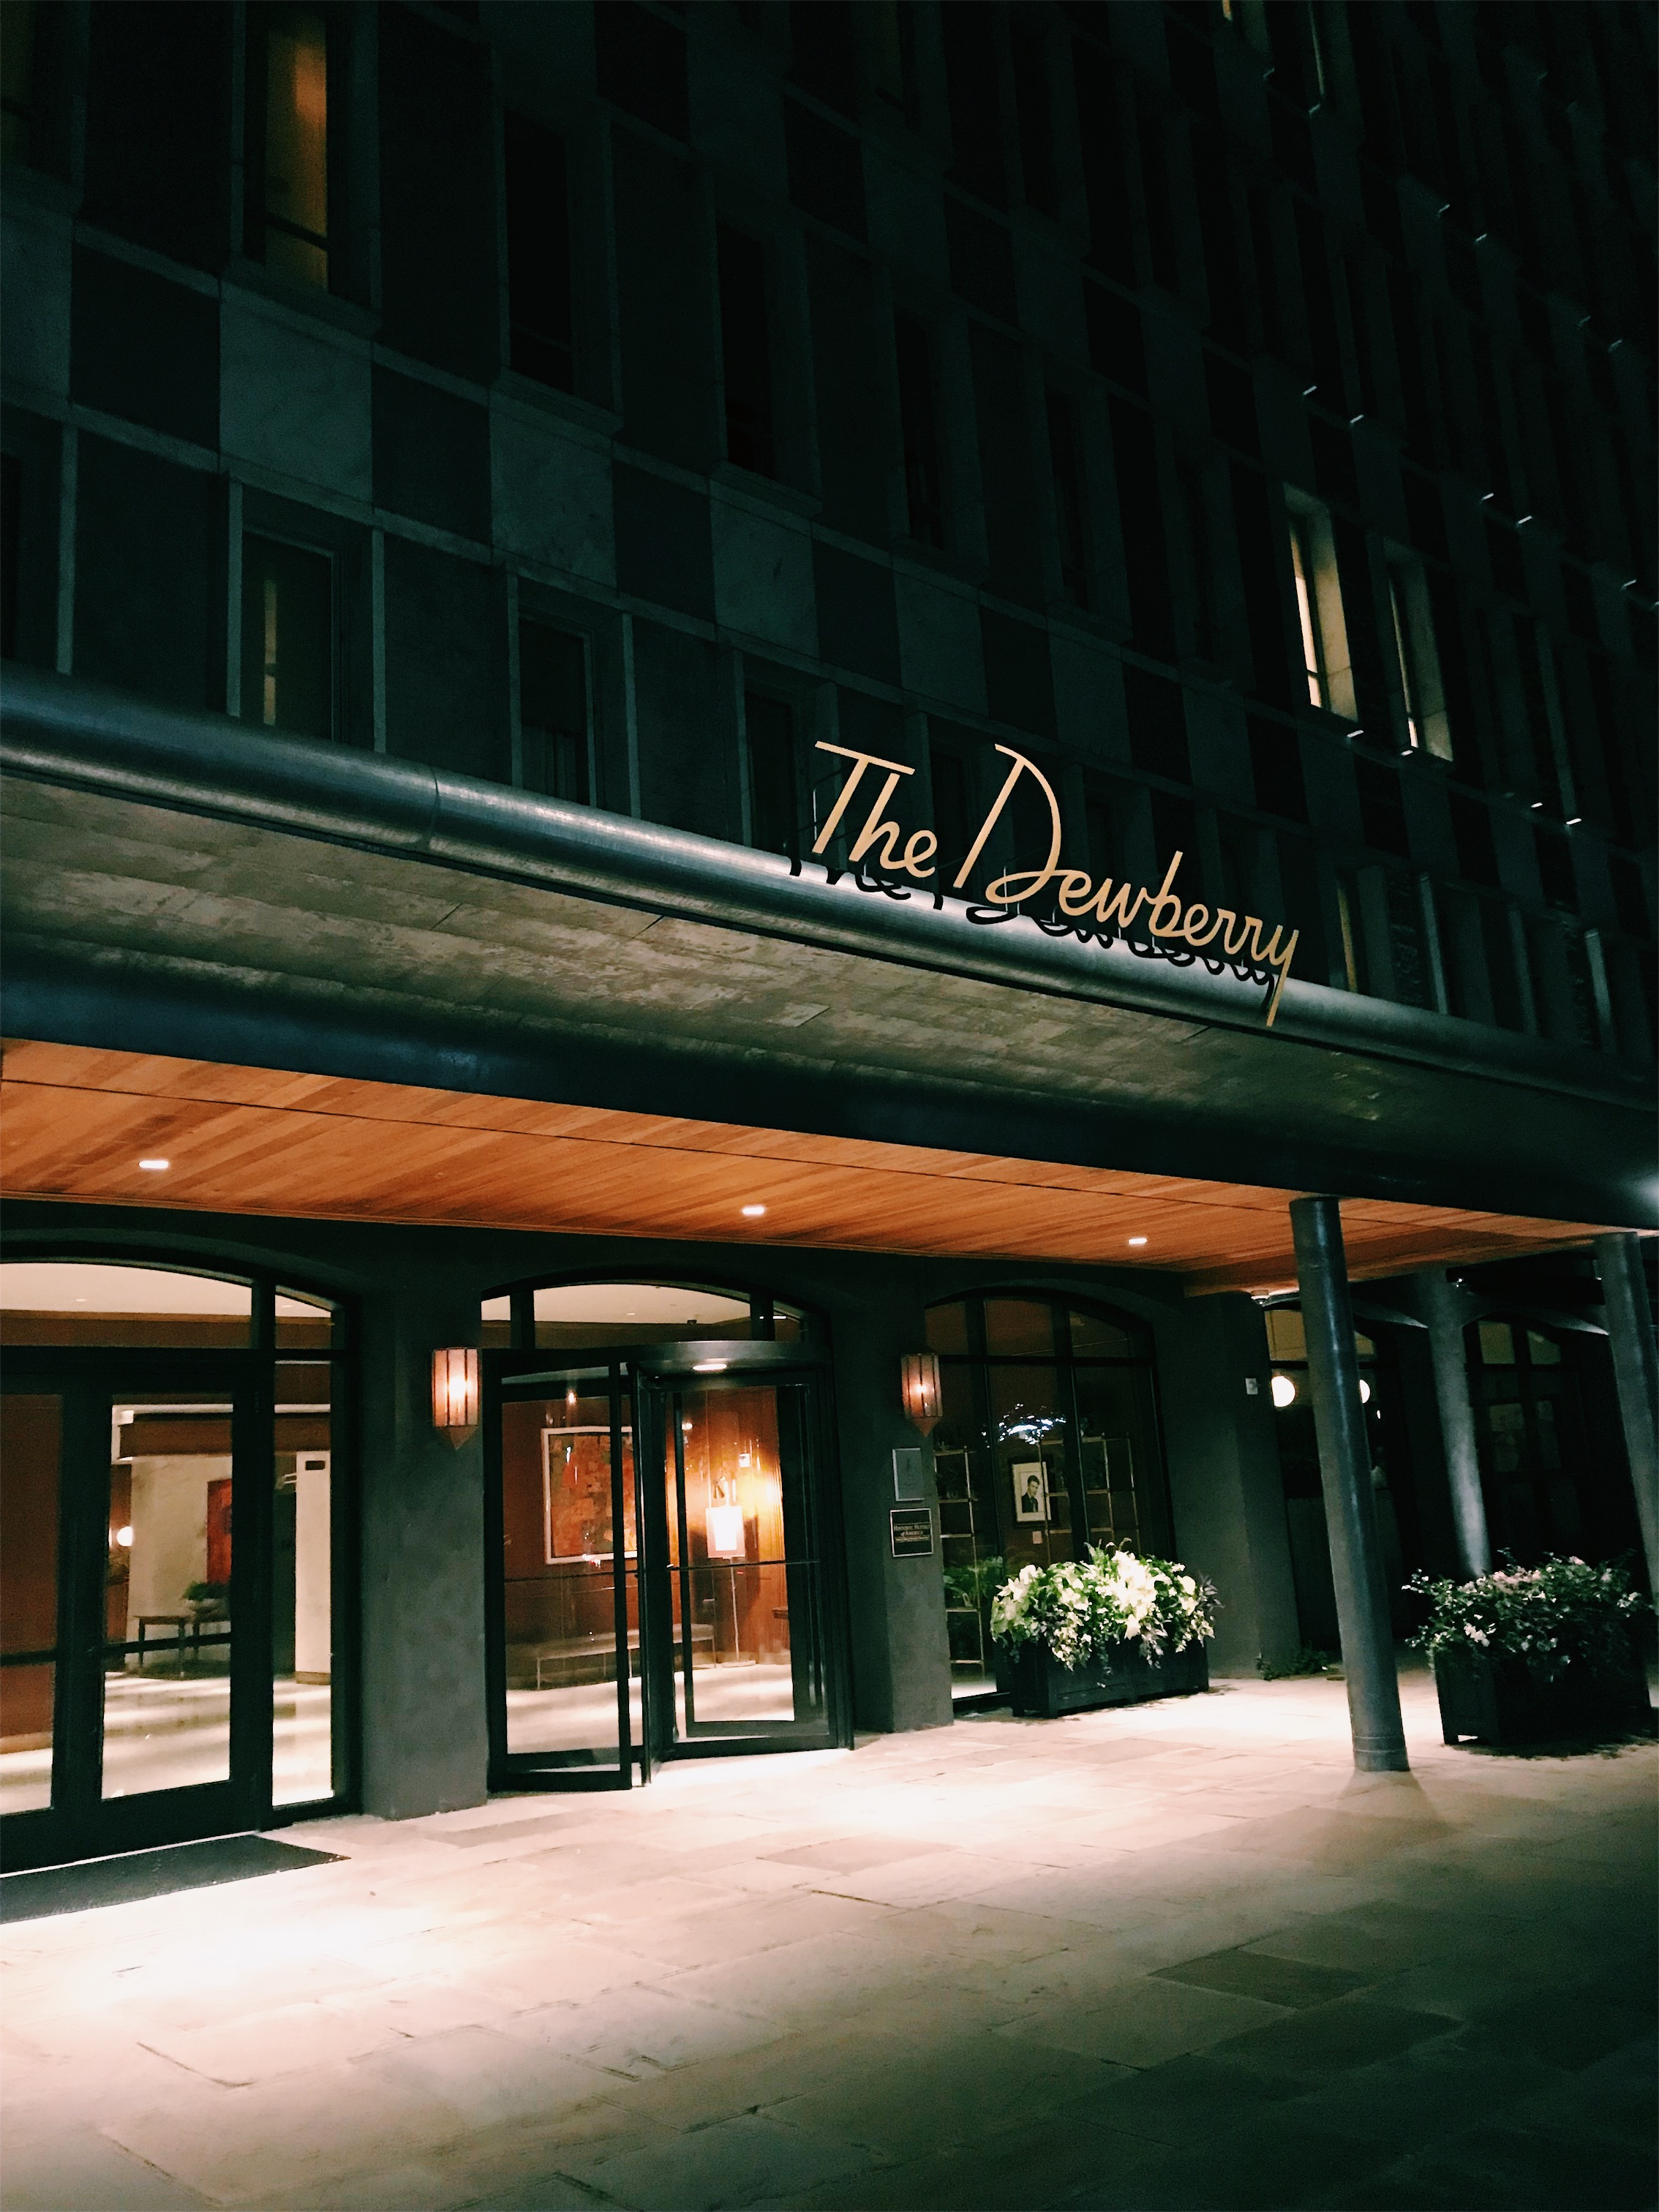 The Dewberry Hotel at night